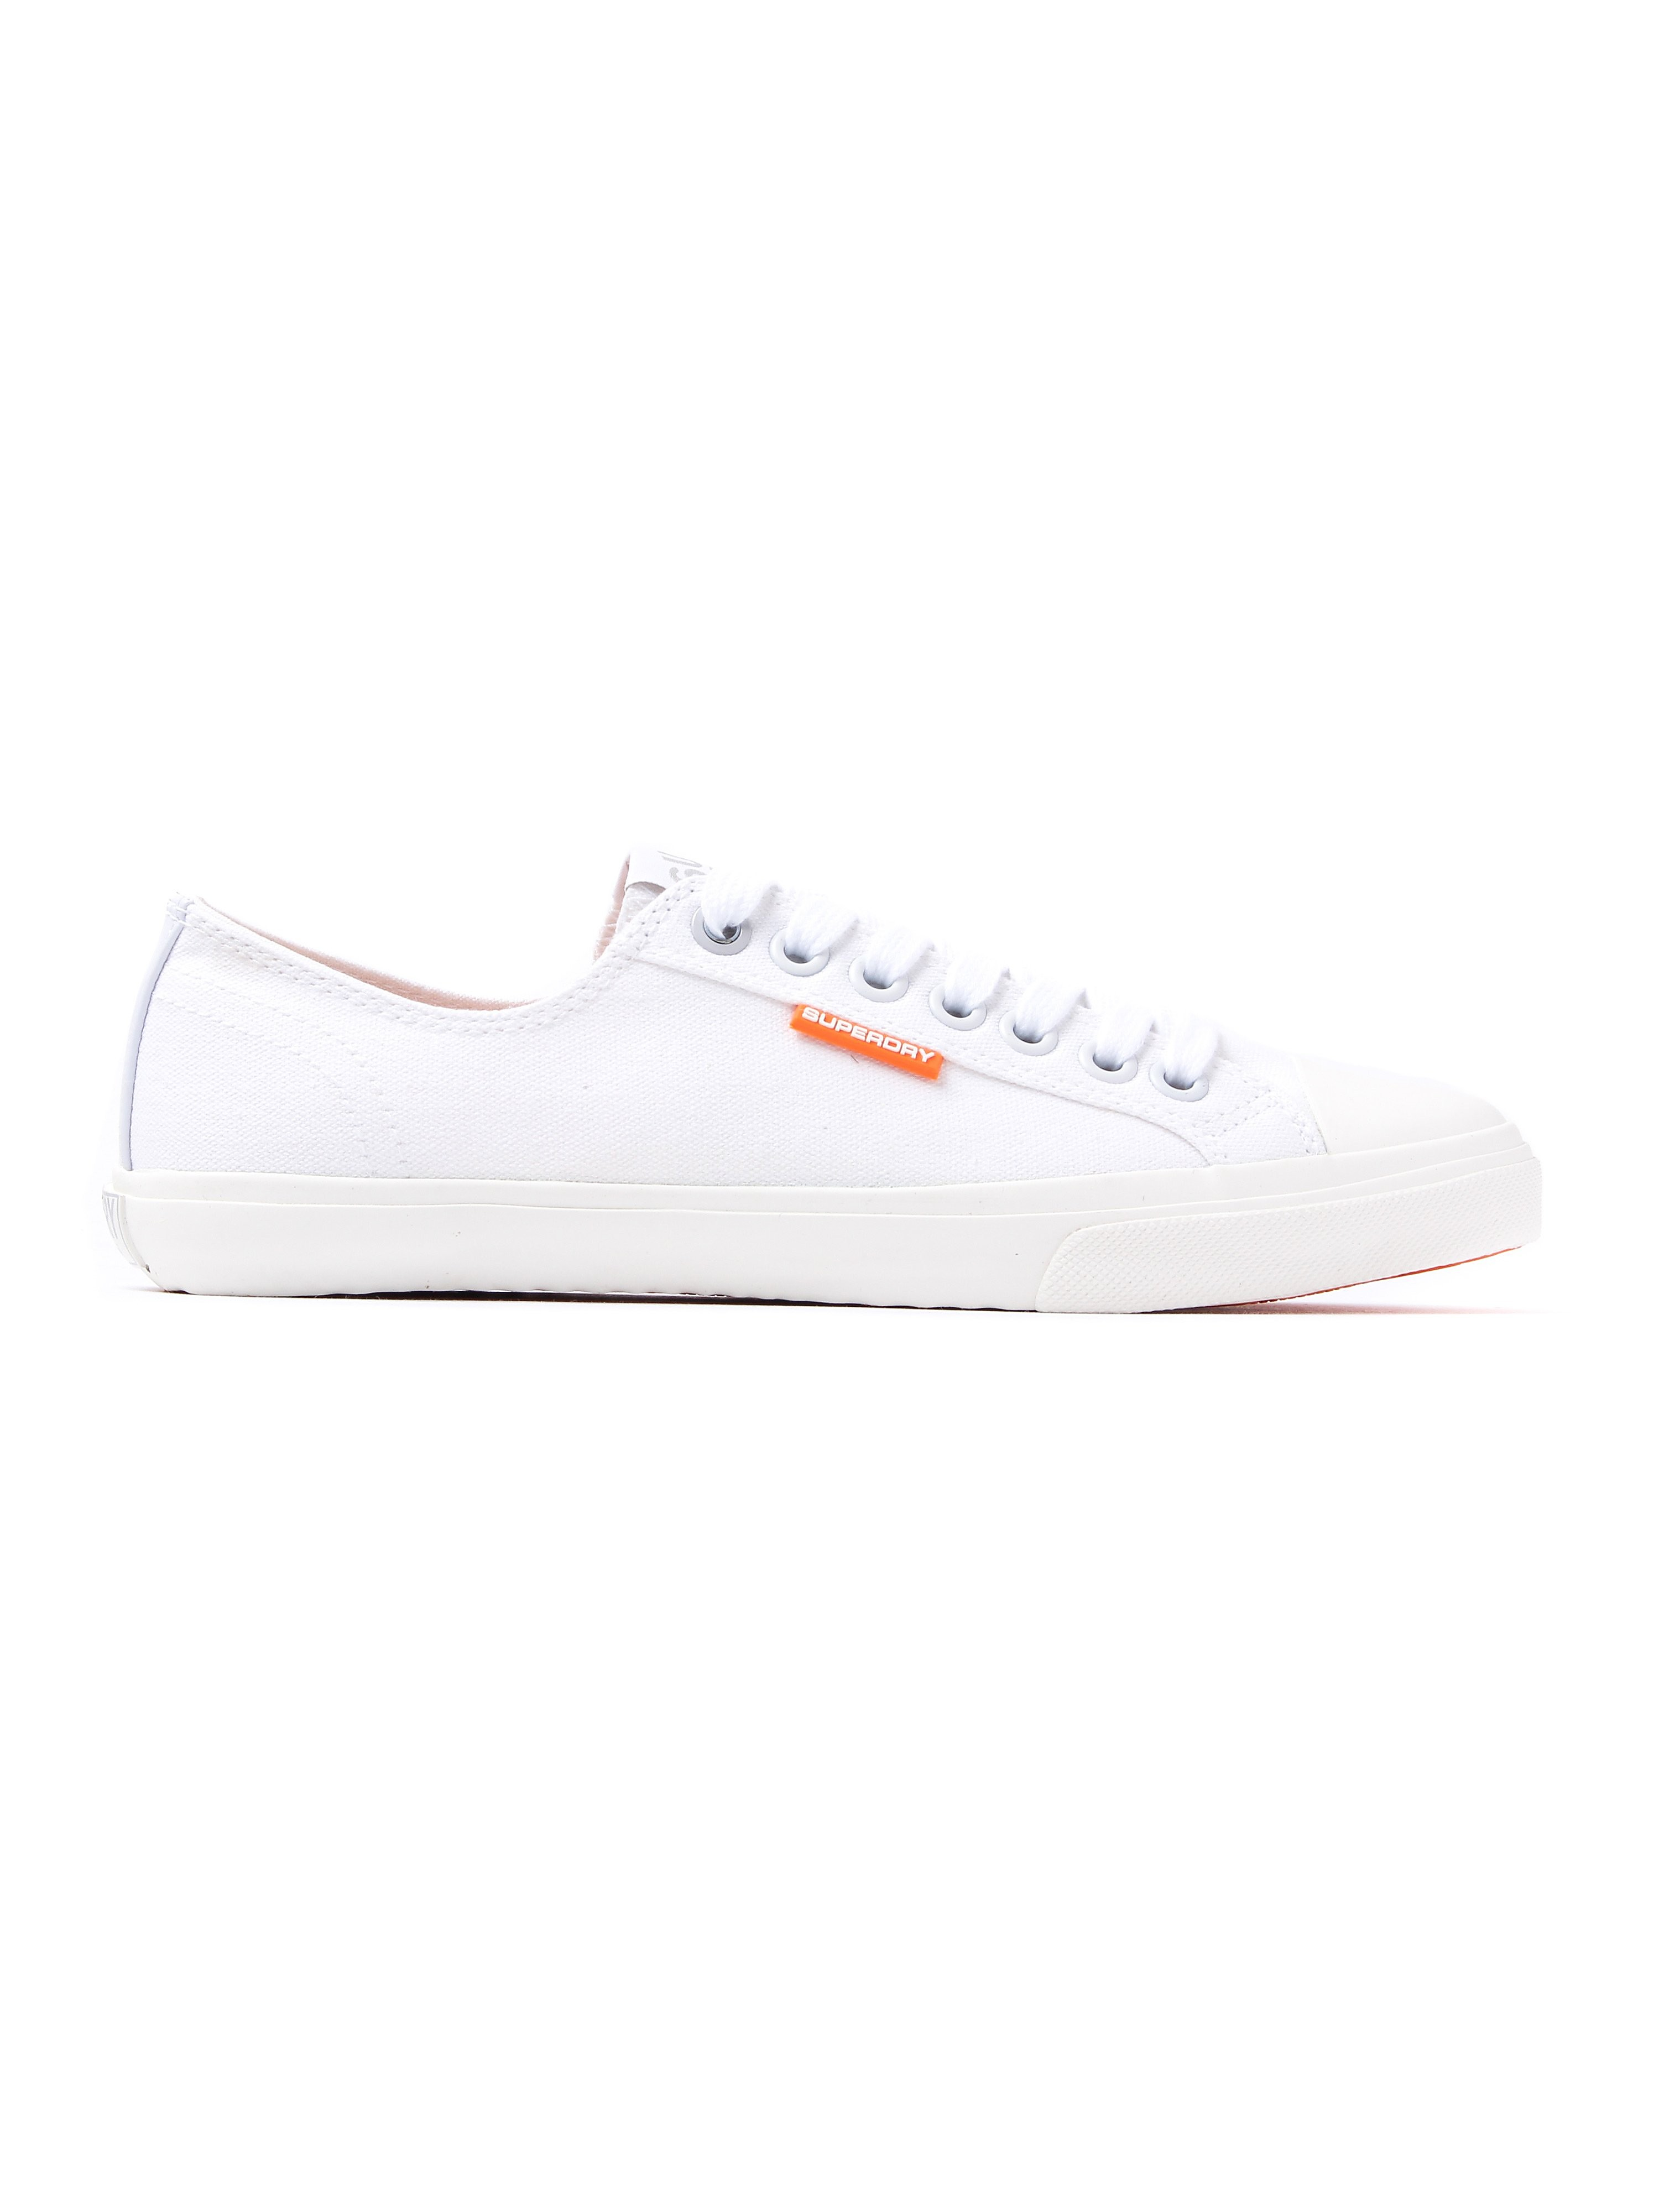 Superdry Men's Low Pro Sleek Canvas Trainers - White